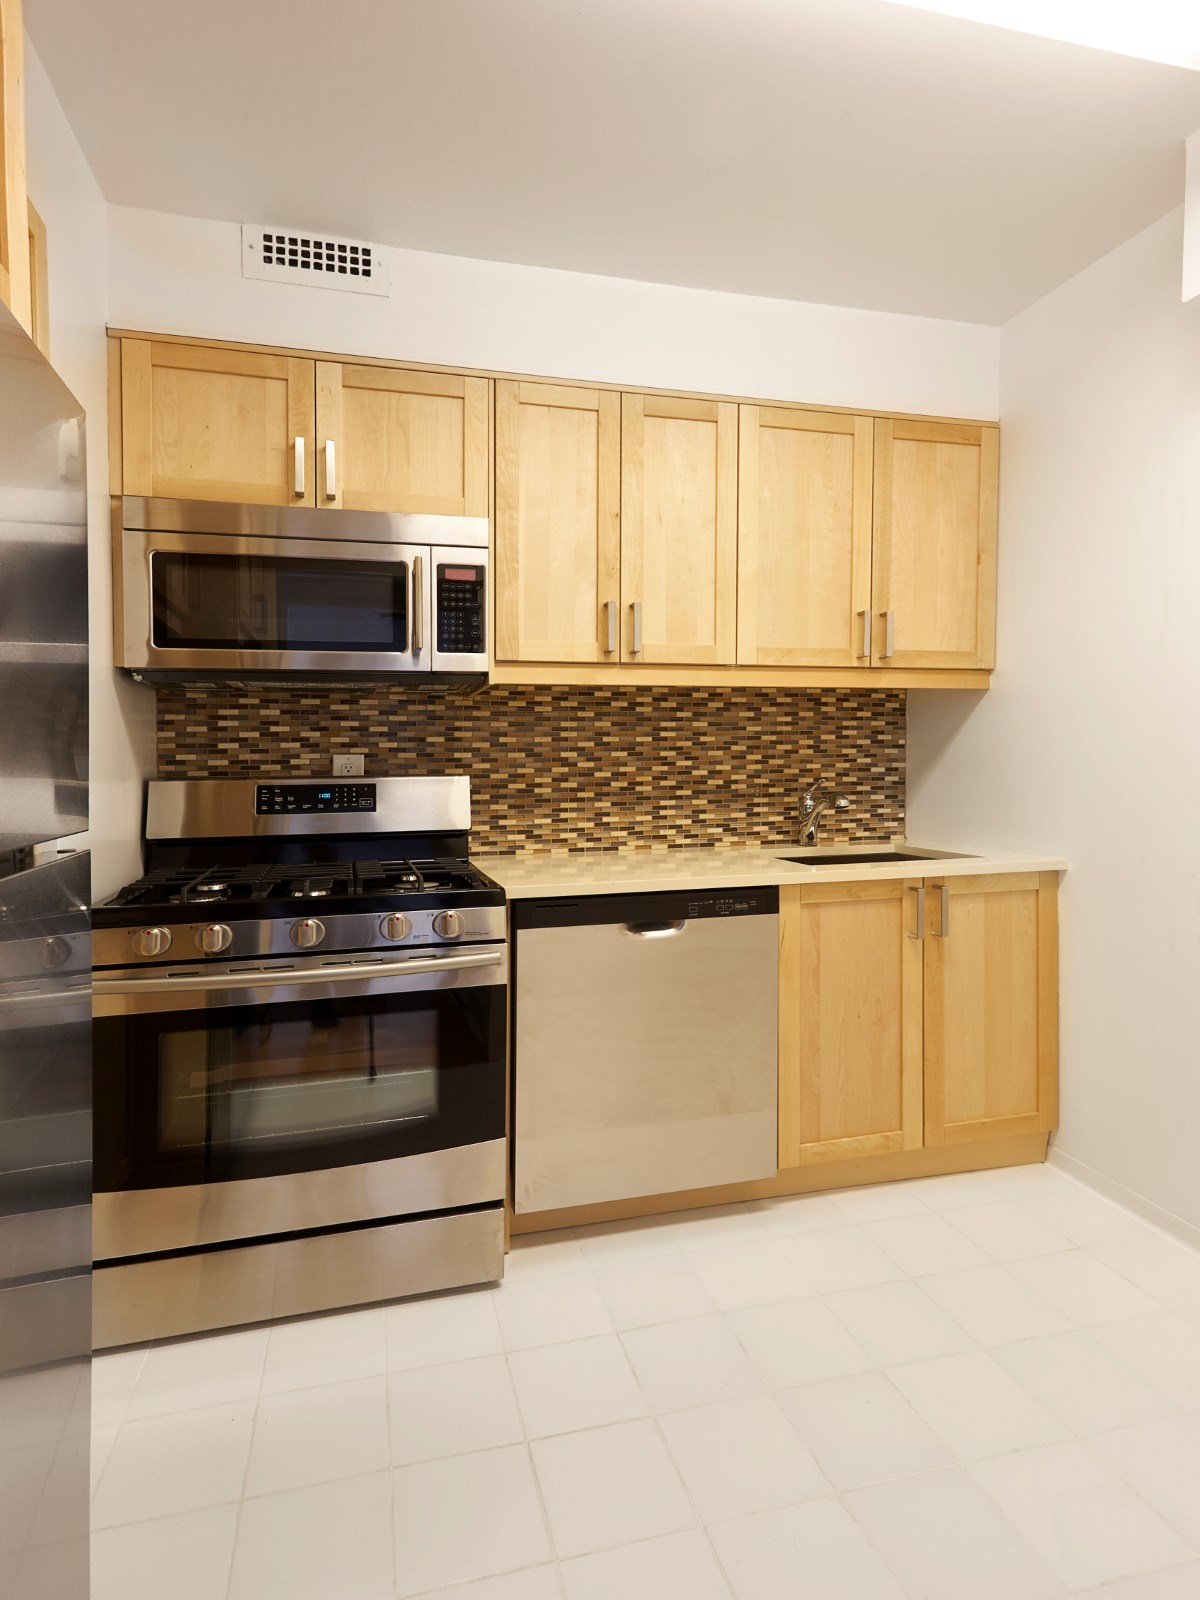 Luxury NYC Real Estate Martine Capdevielle20.jpg